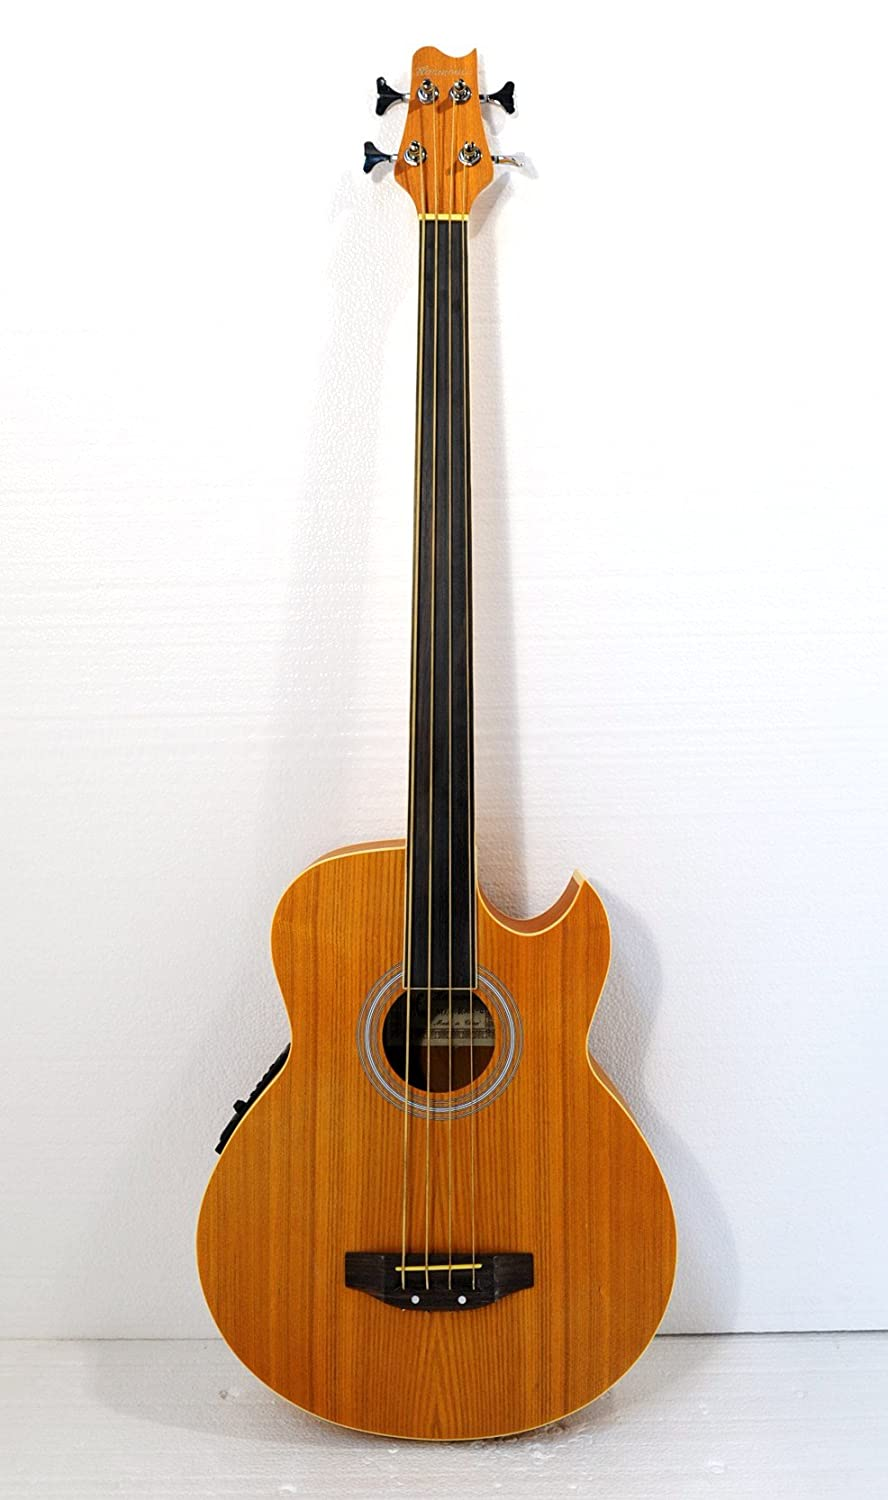 Fretless 4 String Acoustic Electric Cutaway Bass Guitar, Light-Brown Satin Finish, with a padded gig bag Jisheng 090/66MQ-4-Y